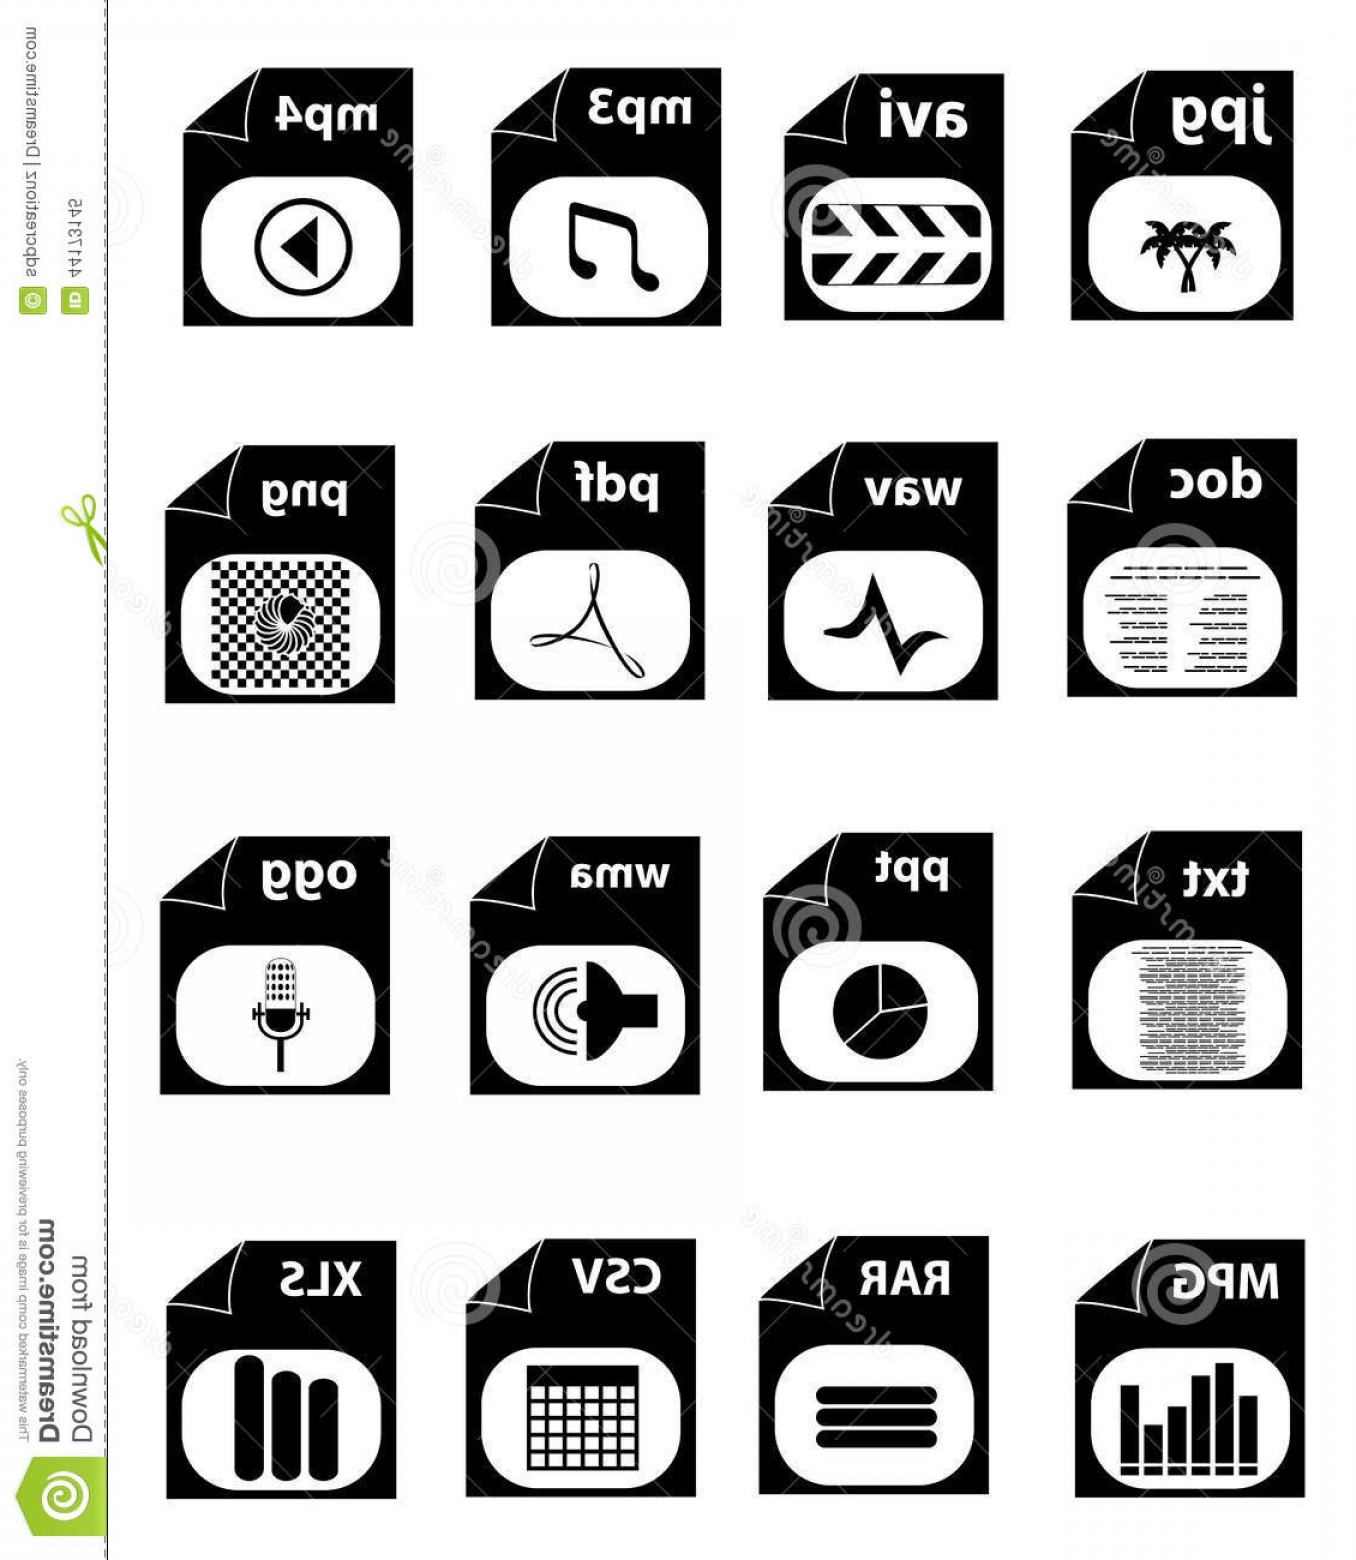 File Extension Vector Art: Stock Illustration File Extension Icons Vector Illustration Different Type Black Color White Background Image